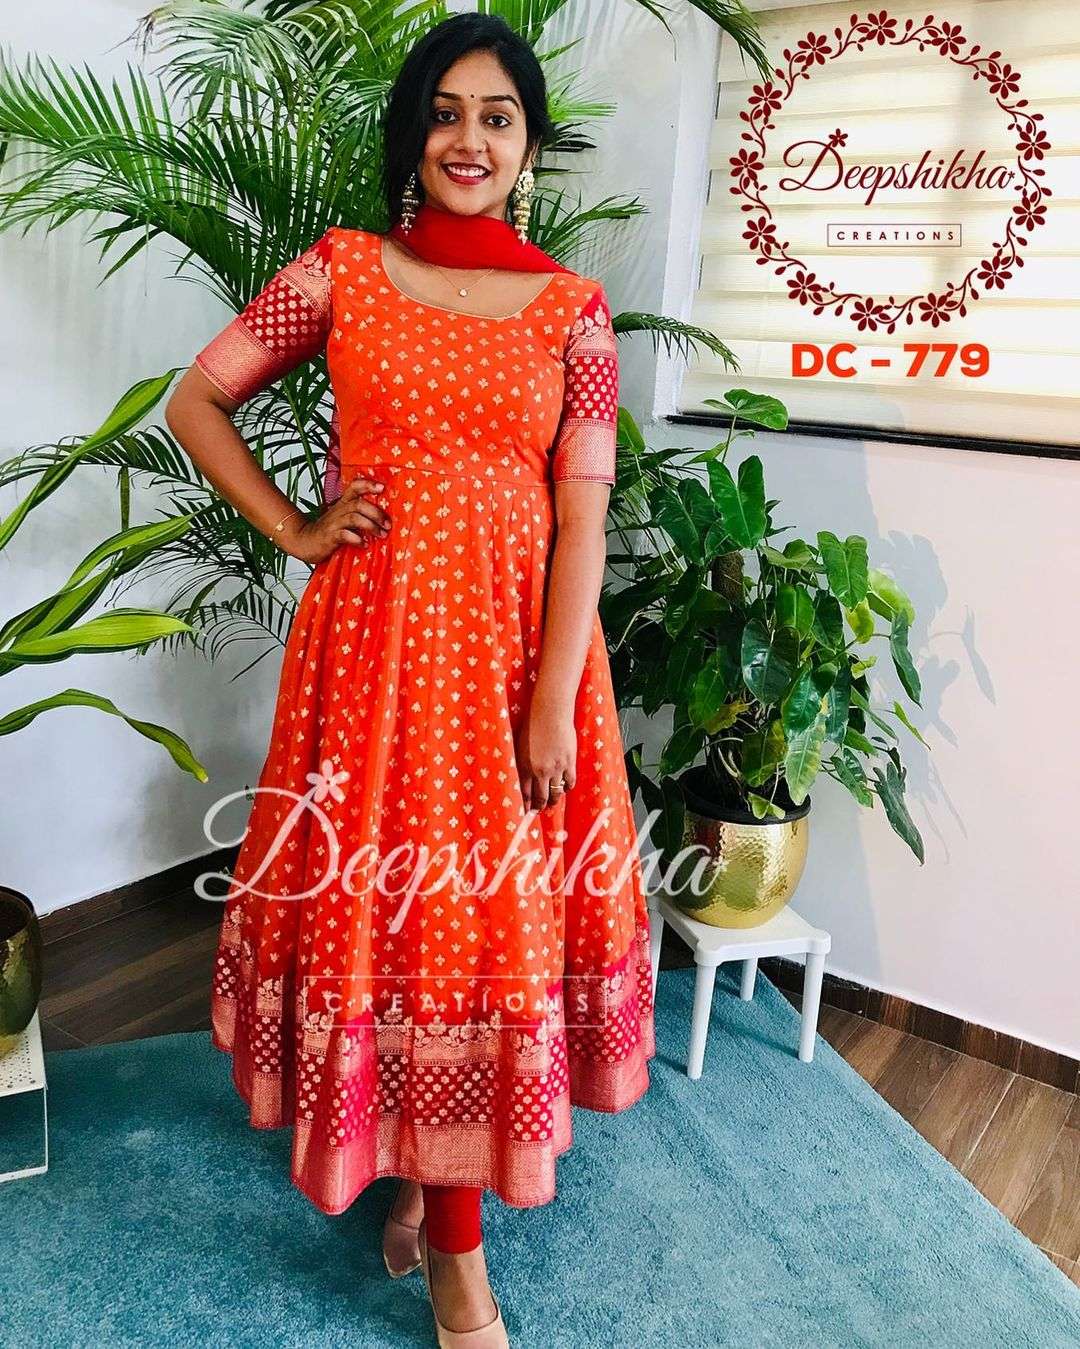 Stunning orange and red color combination pattu long frock with net dupatta. DC - 779. For queries kindly whatsapp: +91 9059683293. 2021-09-20